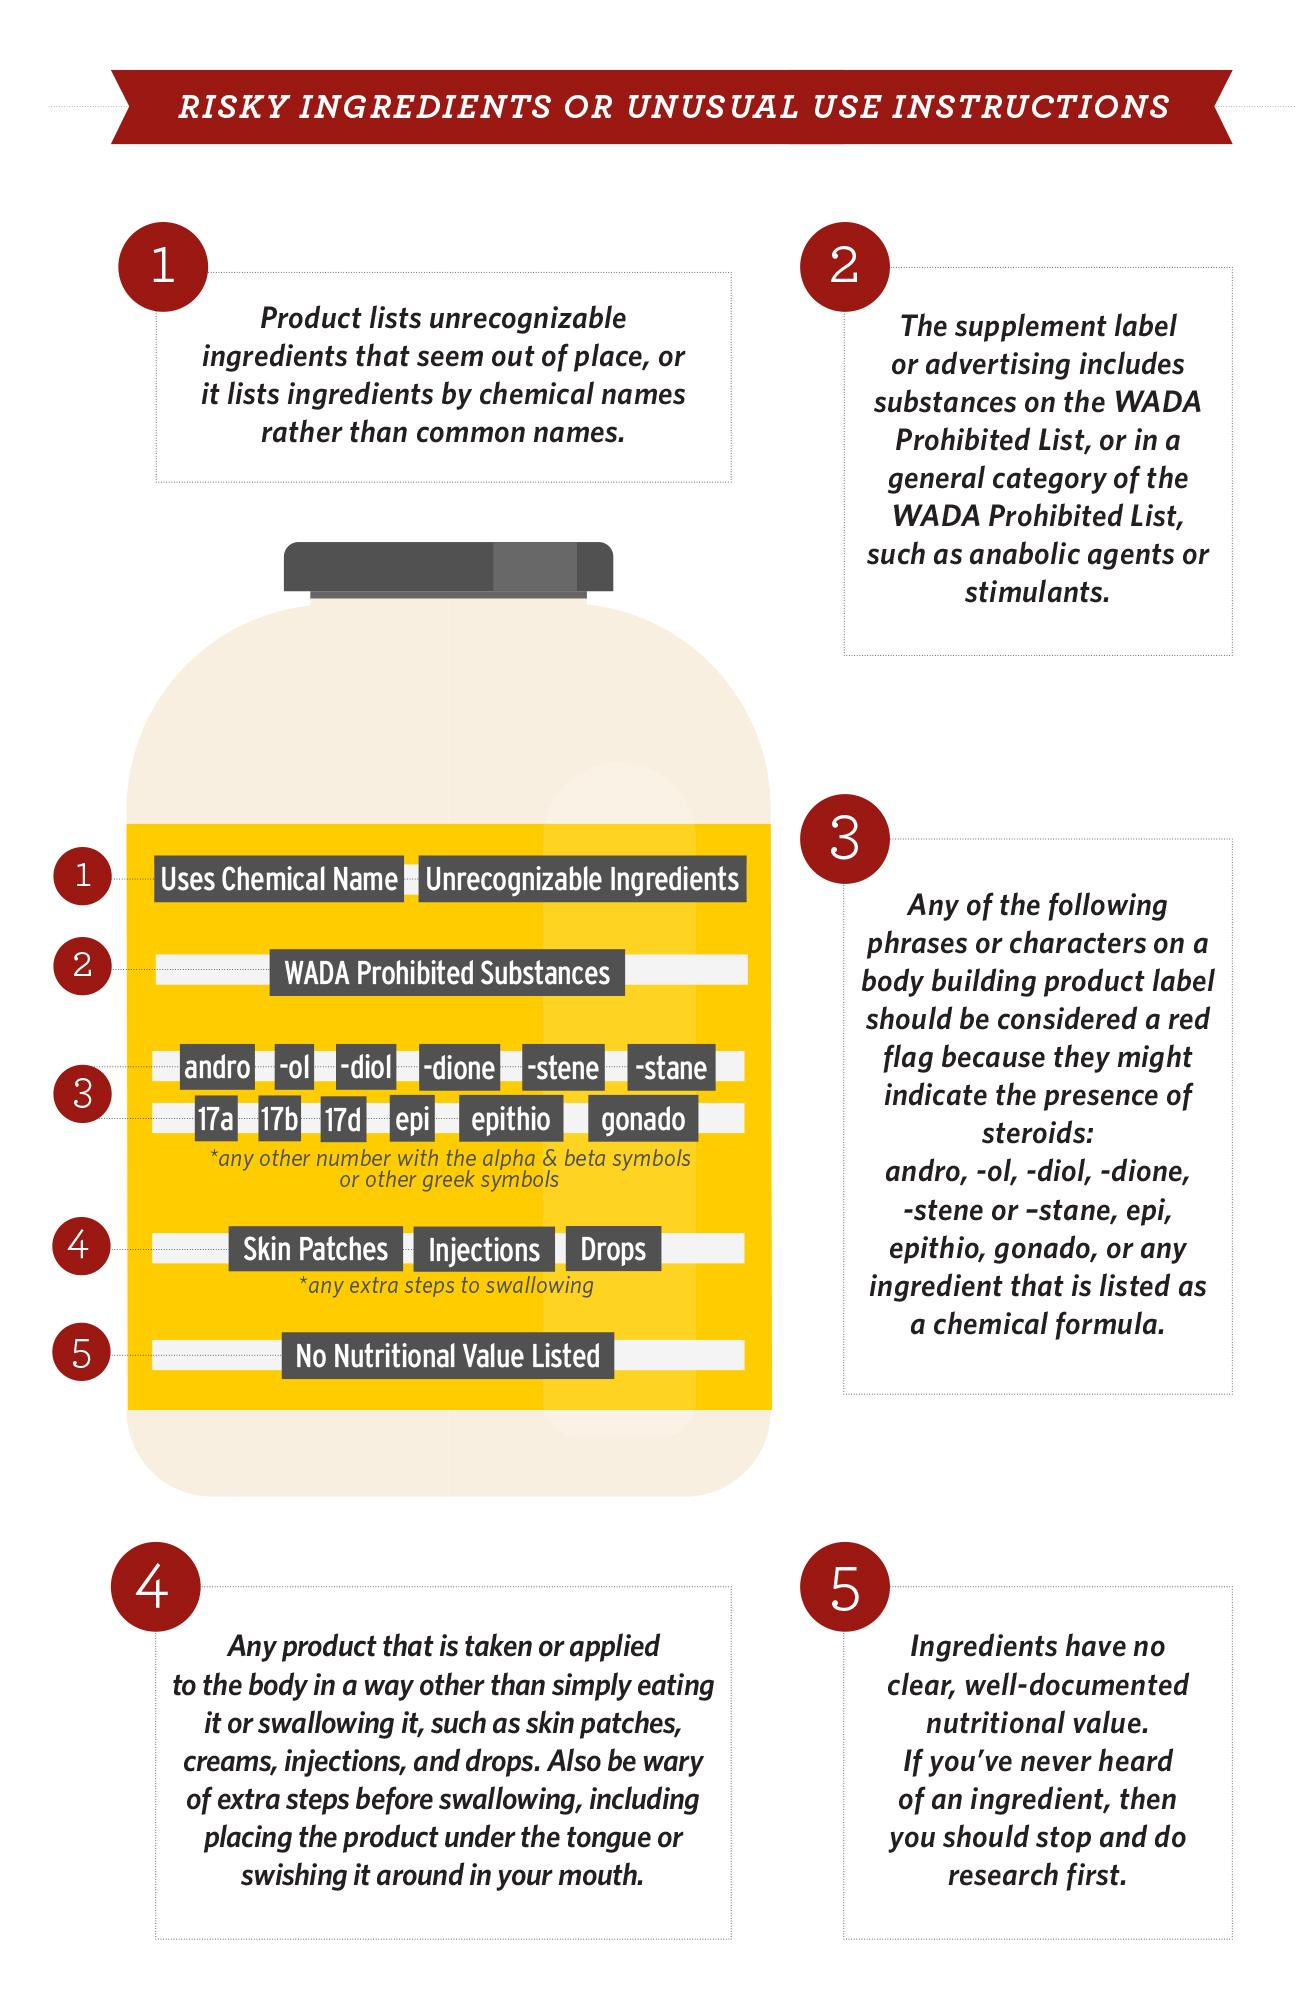 Graphic of risky supplement ingredients and use directions.